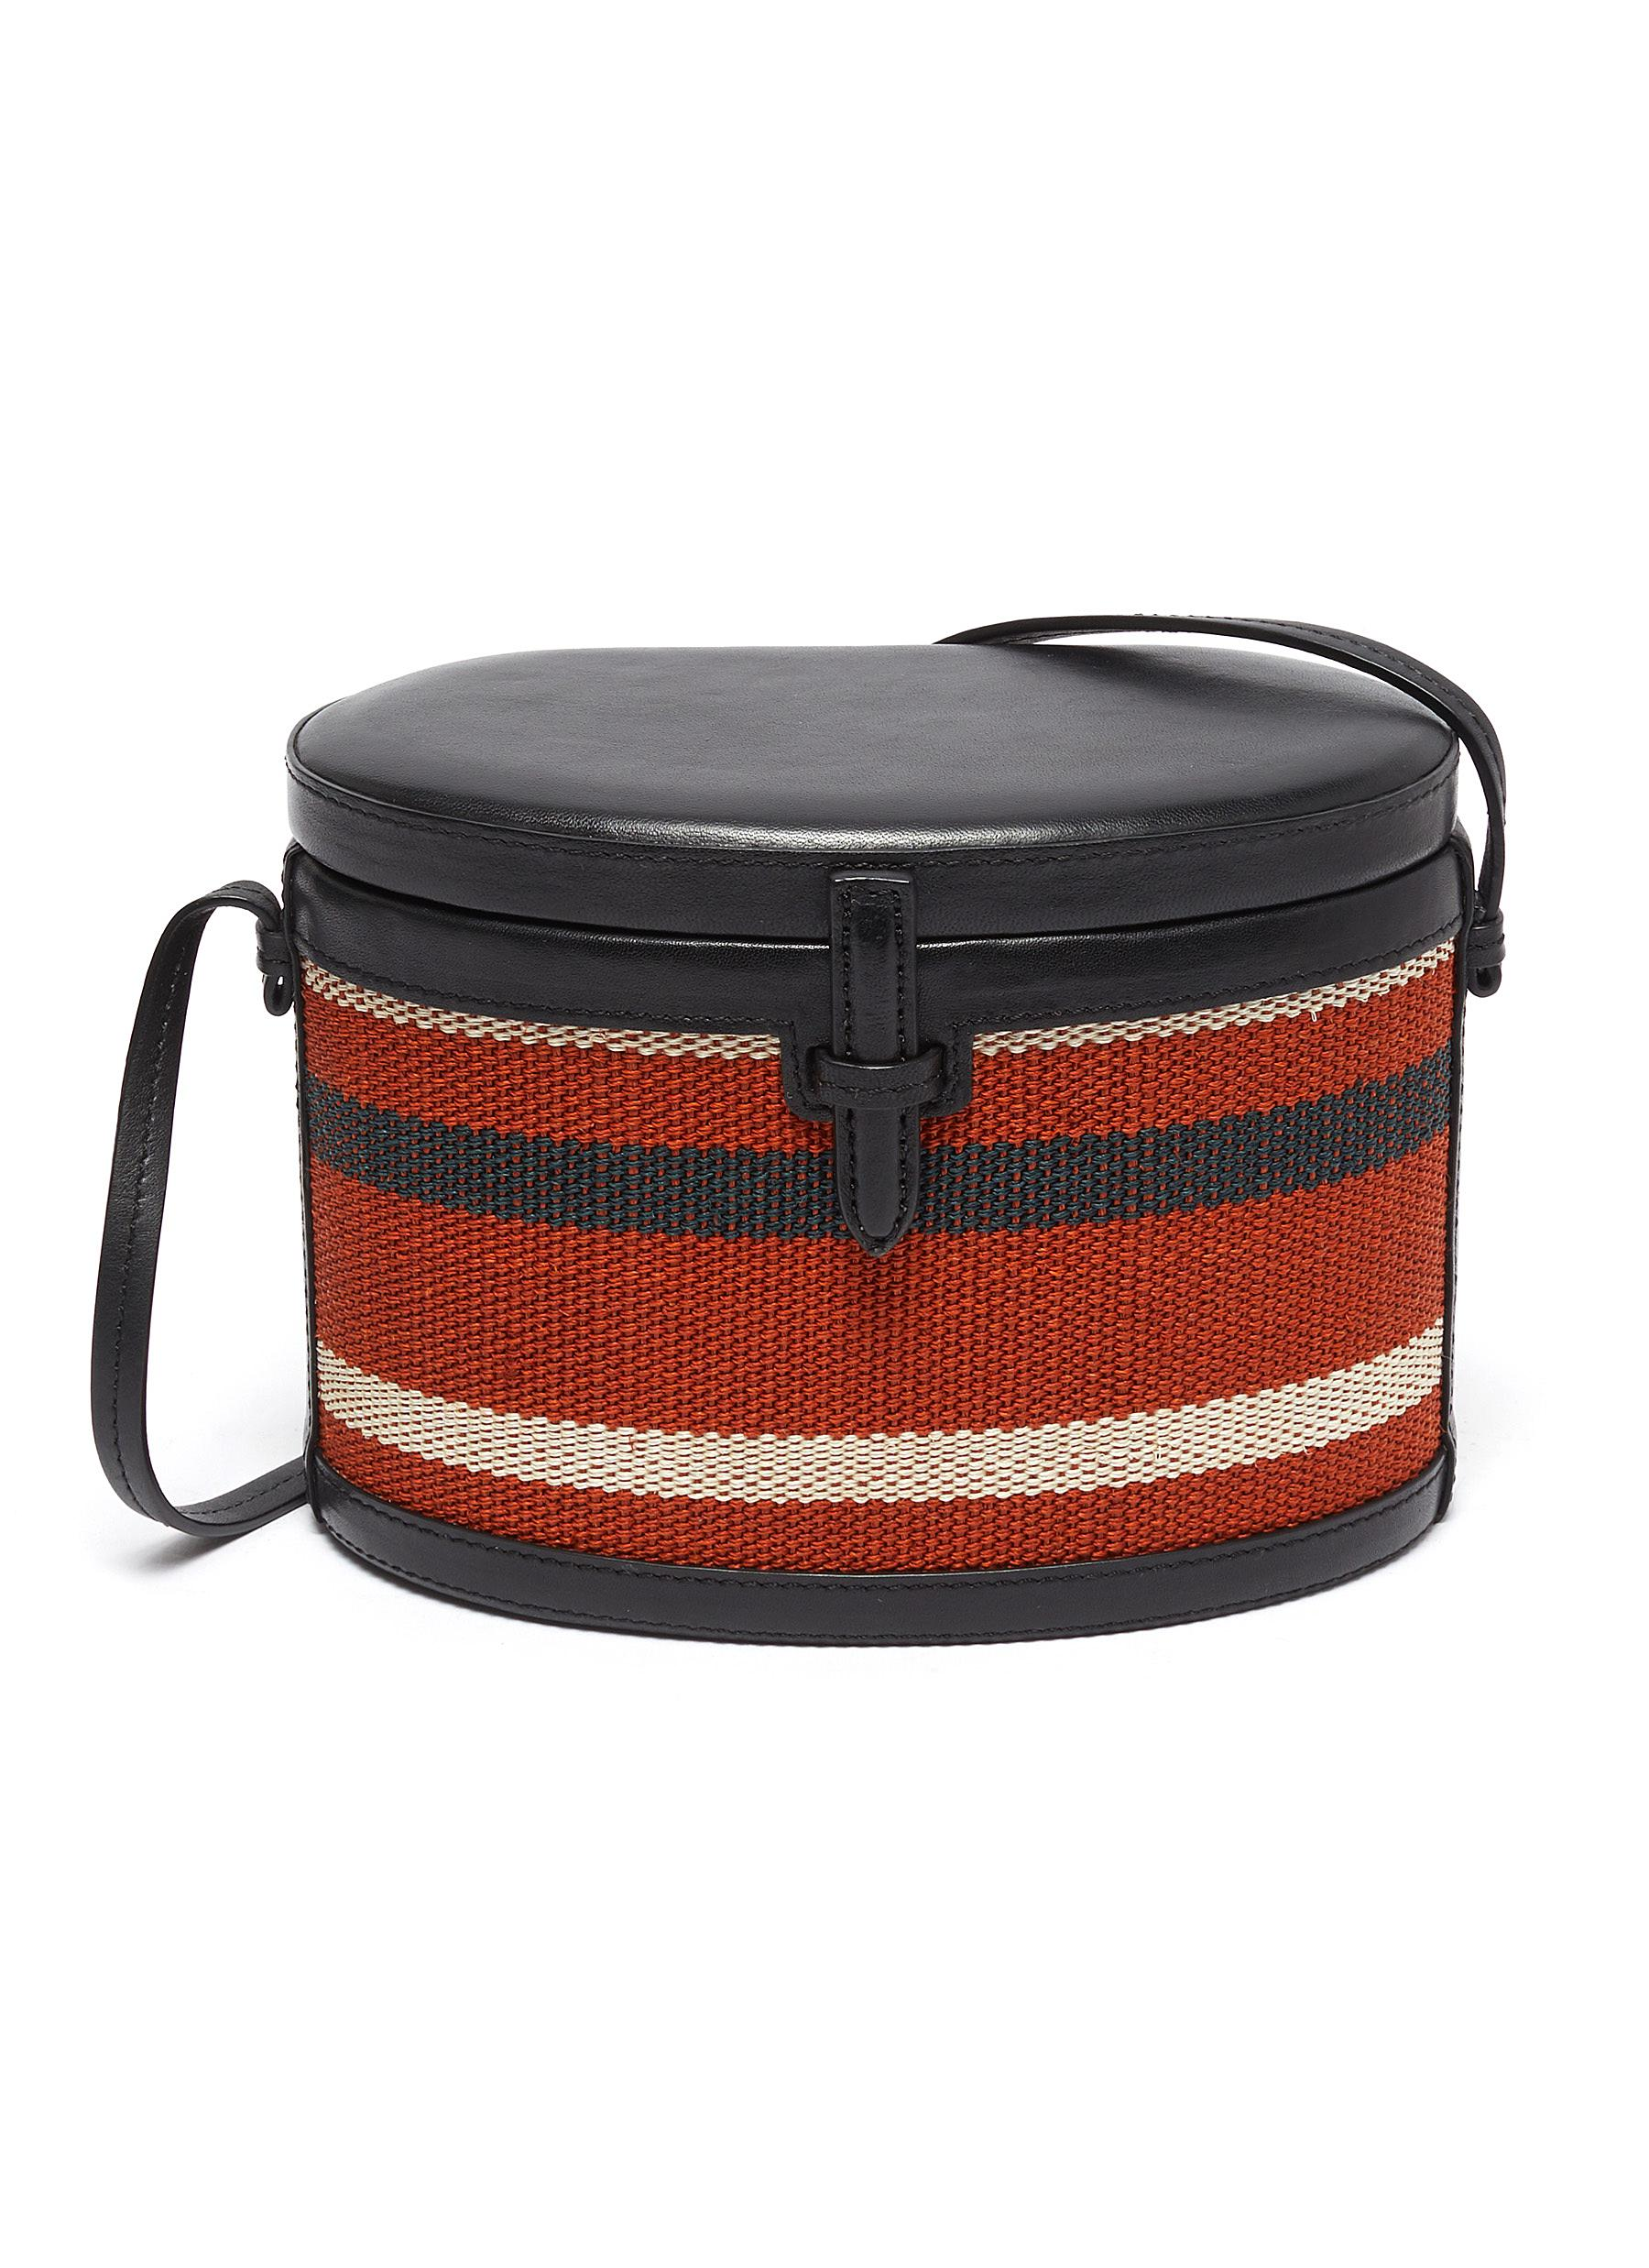 Hunting Season 'The Round Trunk' stripe leather shoulder bag